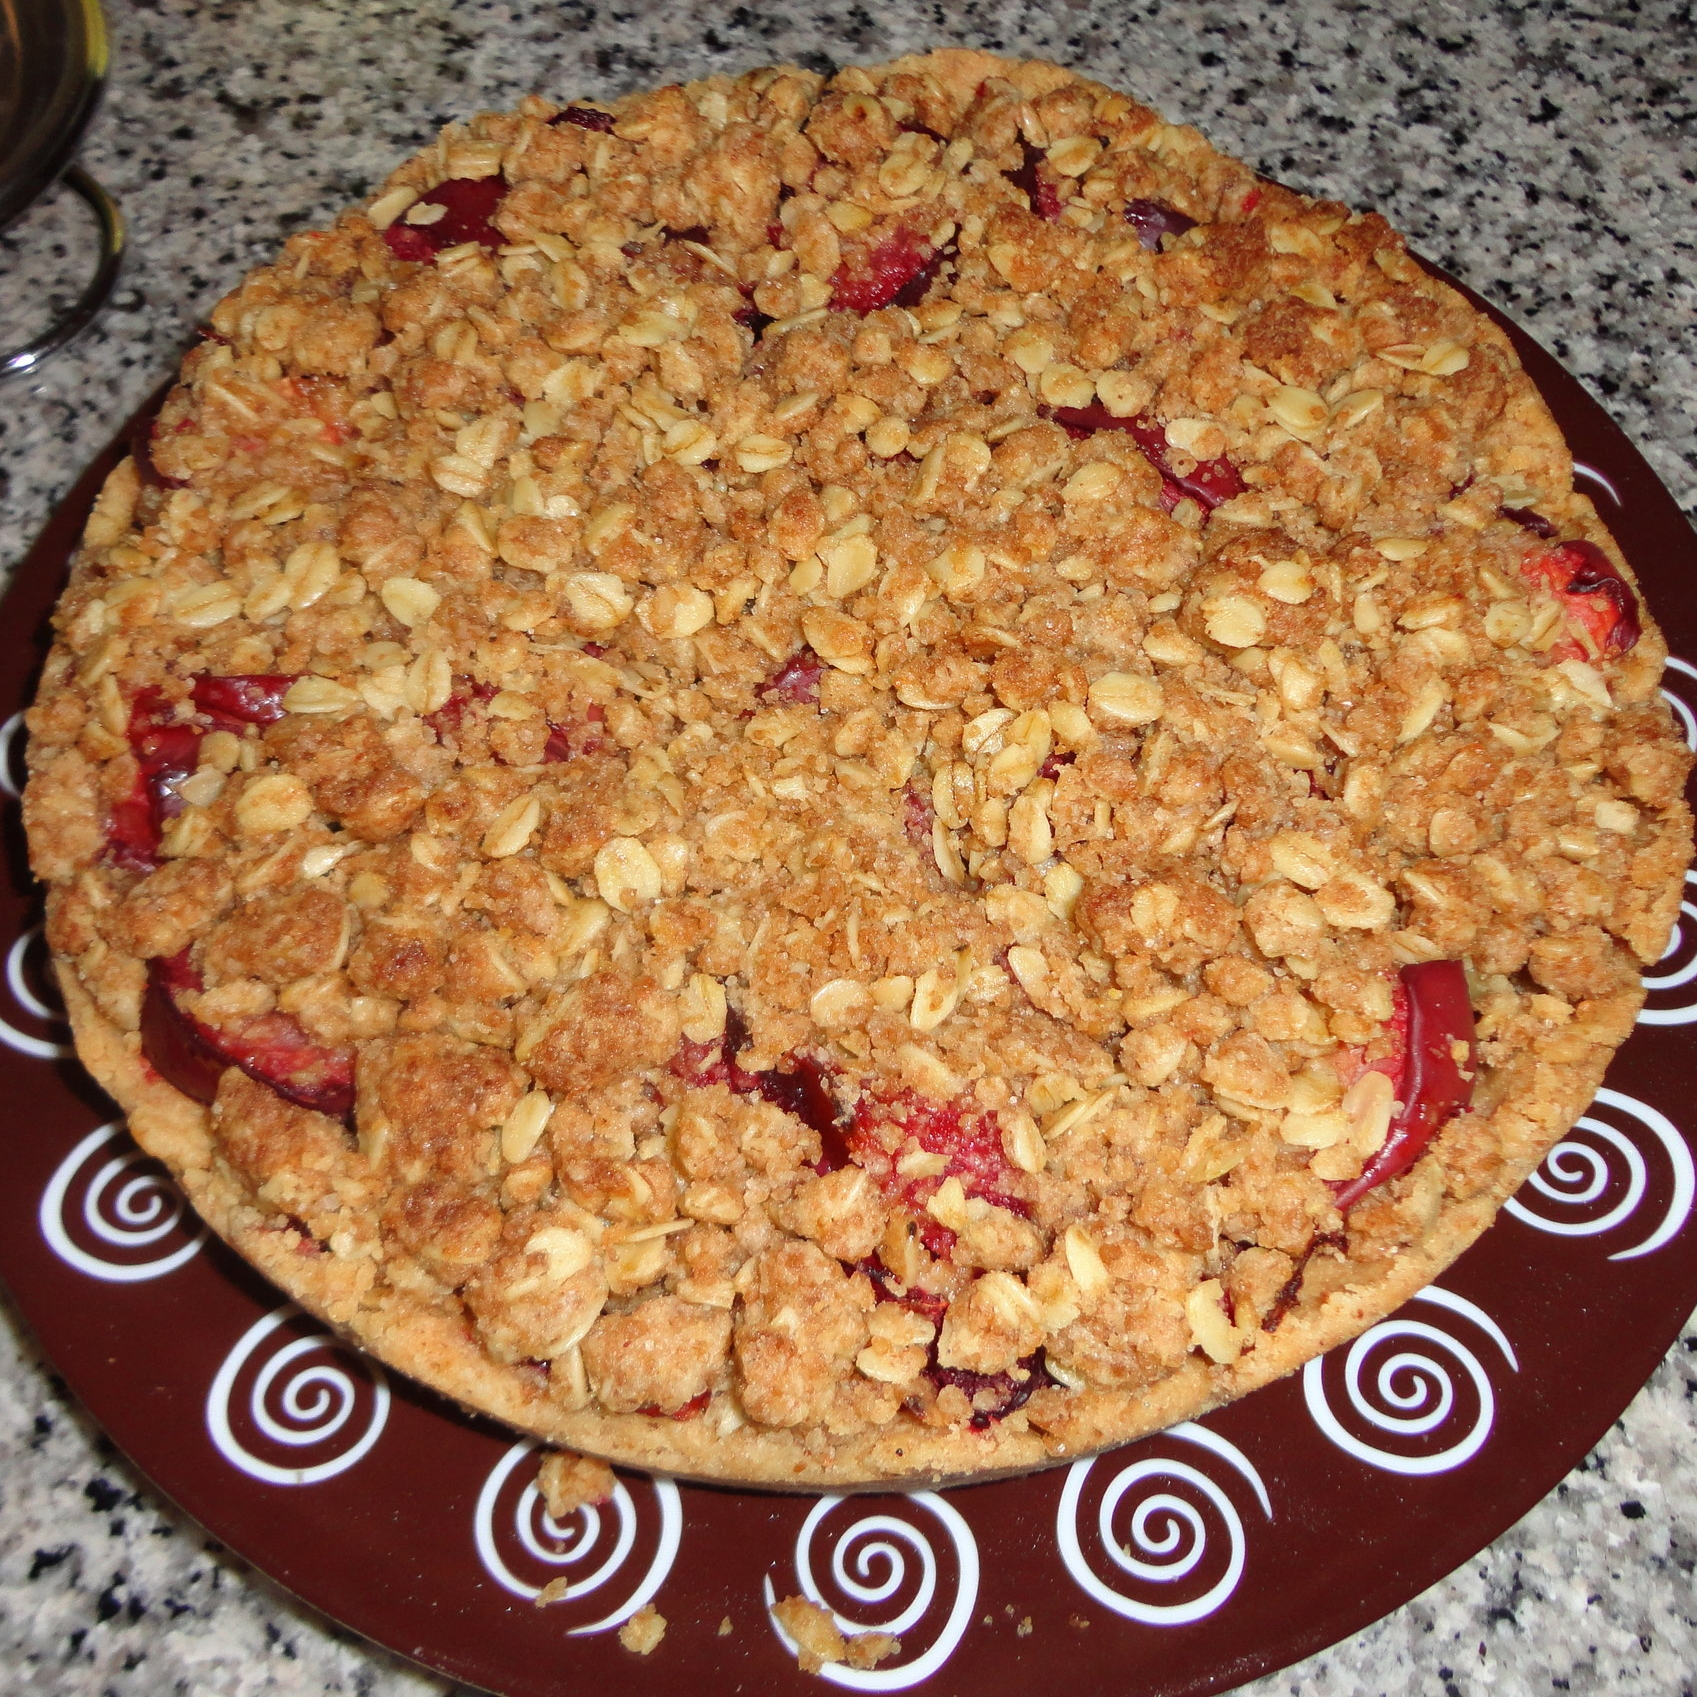 Homemade plum cake (brought by me, the guest).